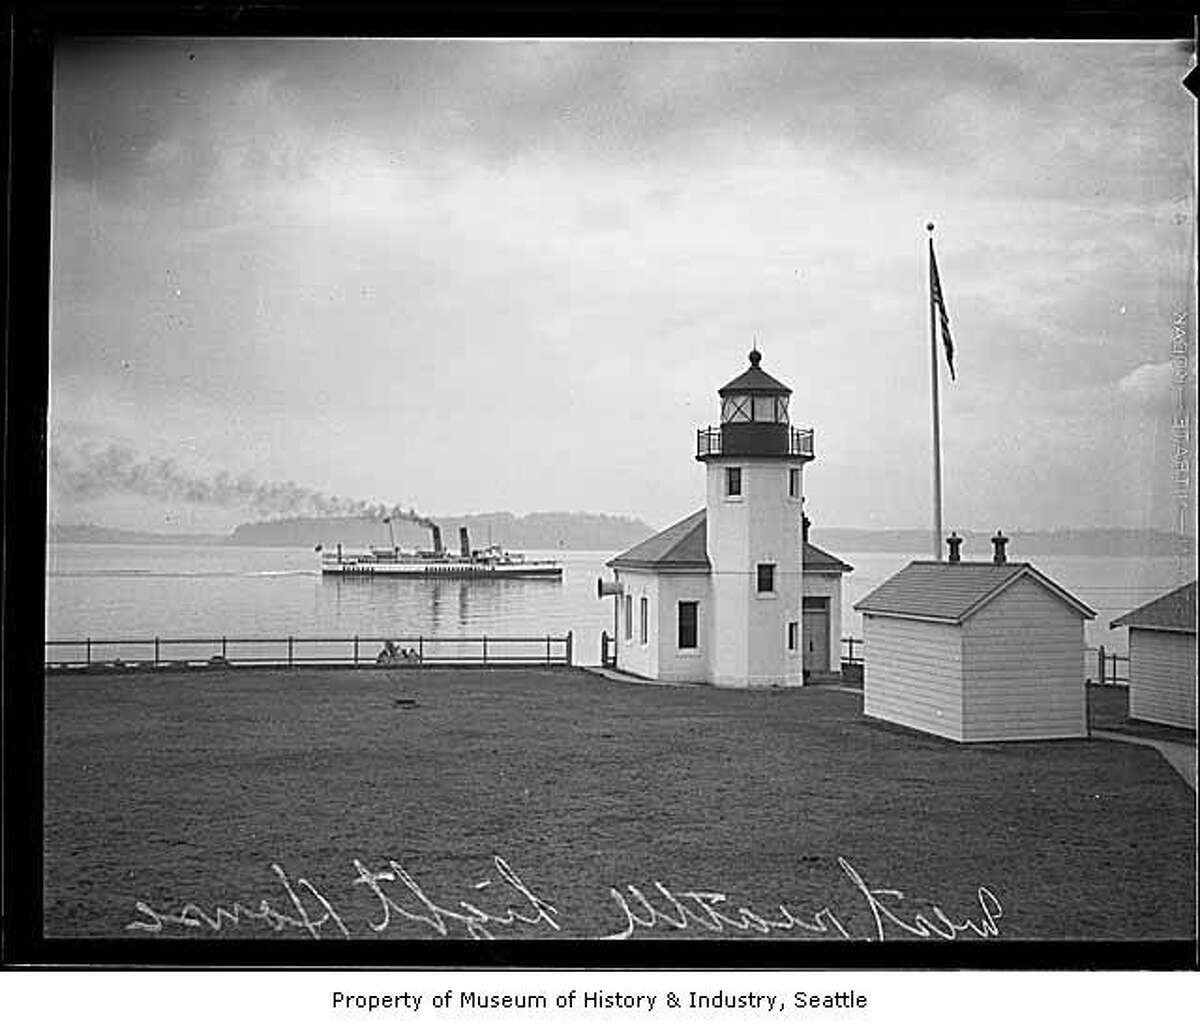 """""""The point of land originally known as Sma-Qua-mooks and Point Roberts was low and hard to see from a ship, so the need for a guiding light became evident. By 1858, the place was called Battery Point, and a single kerosene lantern was hung on the lonely shore by members of Hans Hanson's family. In 1887, the U.S. Lighthouse Service recognized the need for a stronger light, so they took over the task and erected a 10-foot brass post lantern. A new lighthouse station, including a small stucco building with a brick tower at the end of the point, began operating in 1913. The structure remains today."""" -MOHAI. Photo, dated 1931, courtesy MOHAI, Seattle P-I Collection, image number 1986.5.7176.1."""